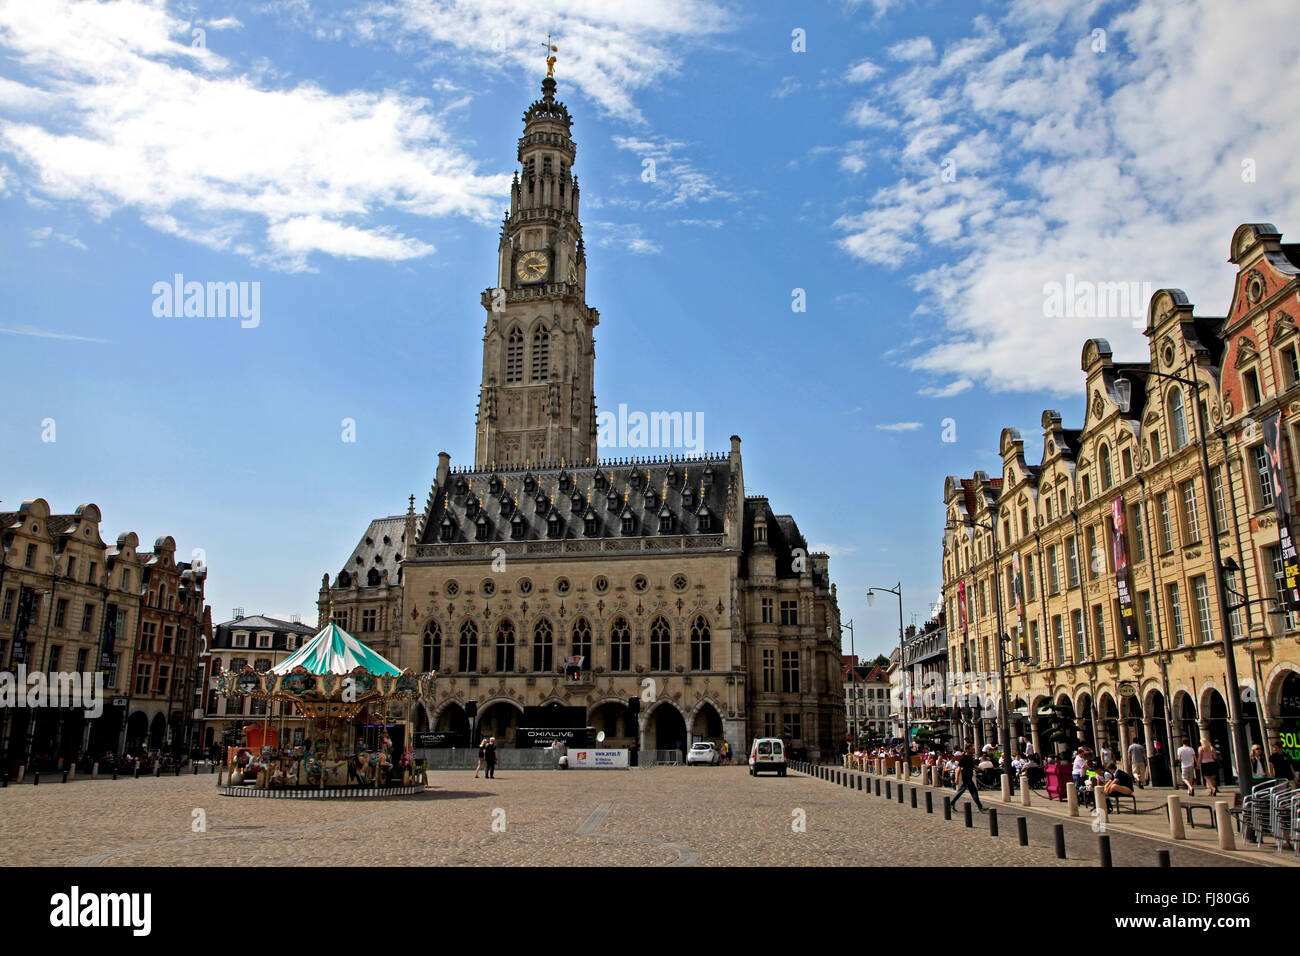 City Hall and Place des Heros, Arras, France Stock Photo